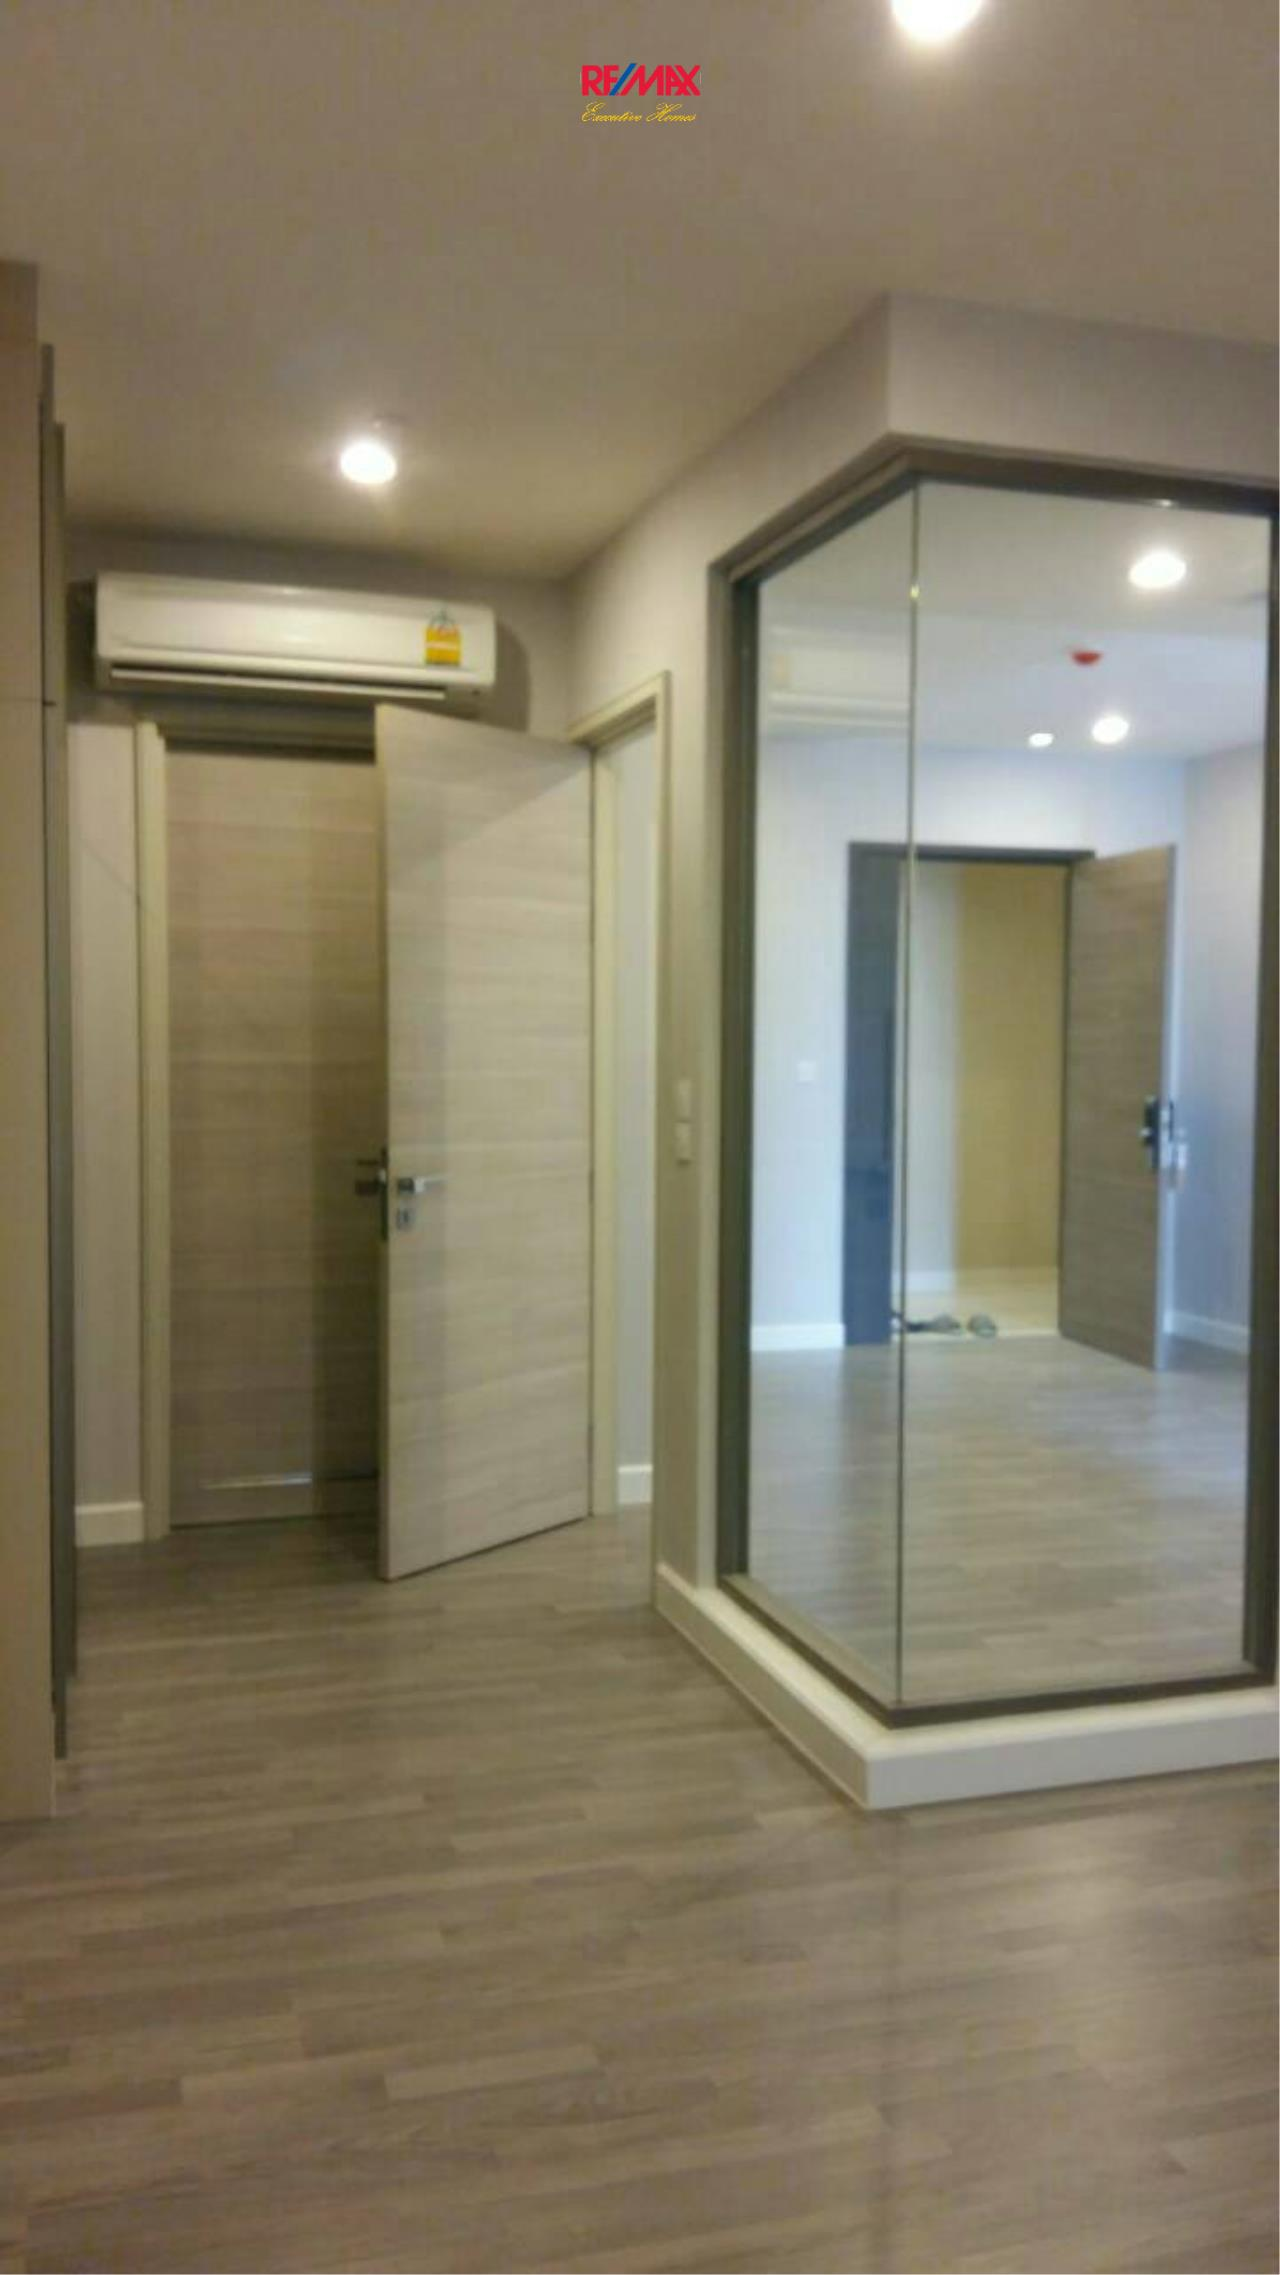 RE/MAX Executive Homes Agency's Nice 1 Bedroom for Rent The Room Sathorn 2